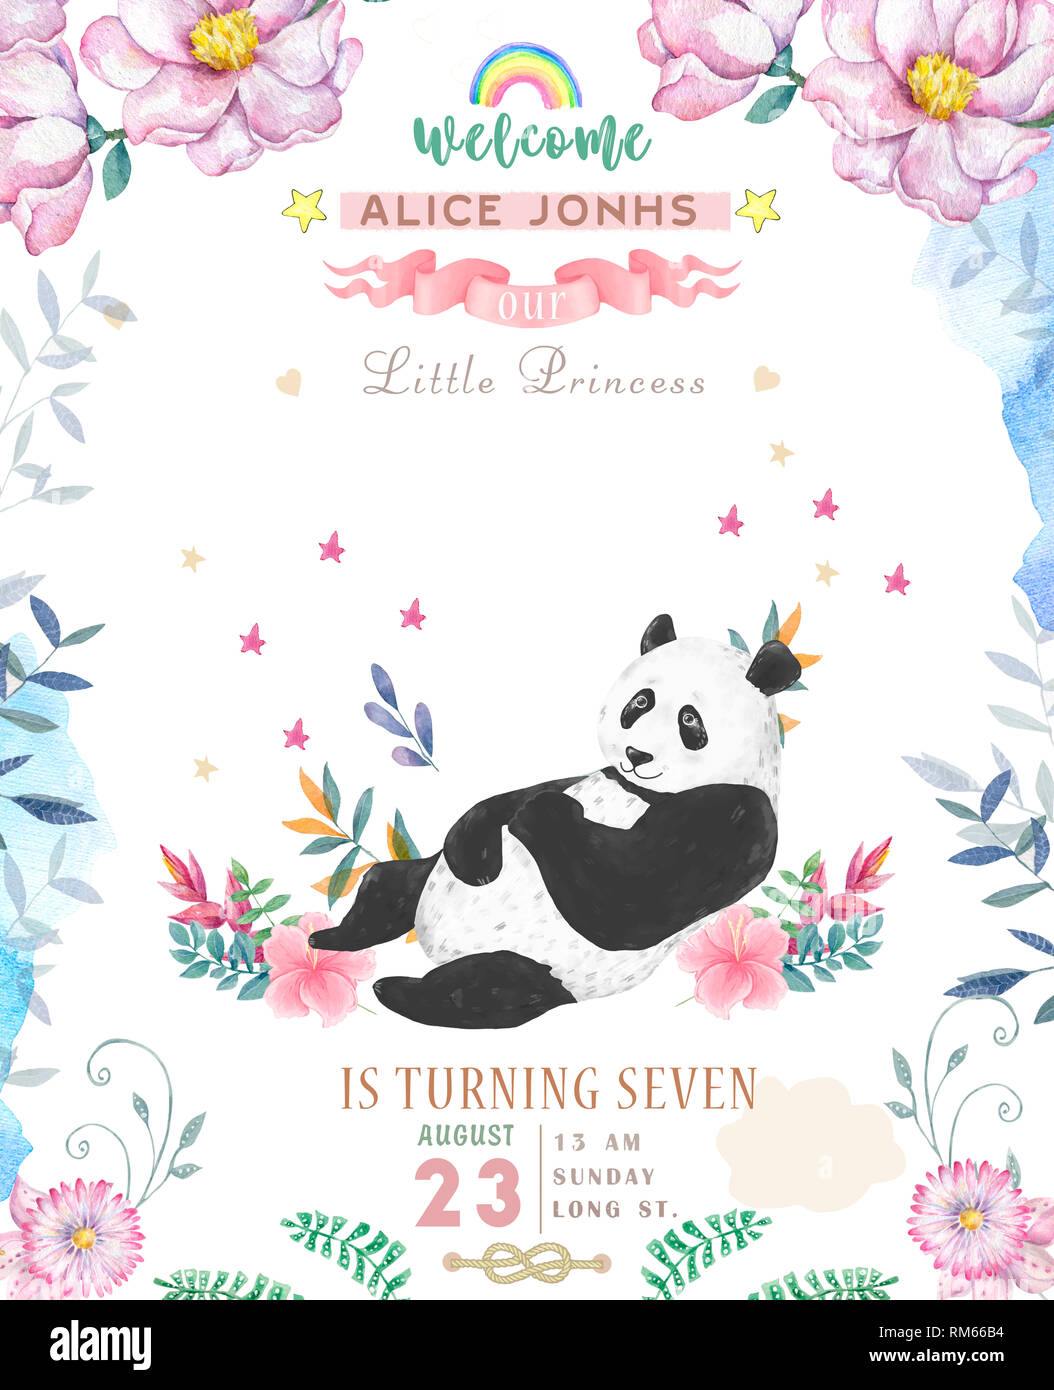 Cute Panda Giving Birthday Wishes, Cute, Panda, Birthday Wishes PNG  Transparent Clipart Image and PSD File for Free Download